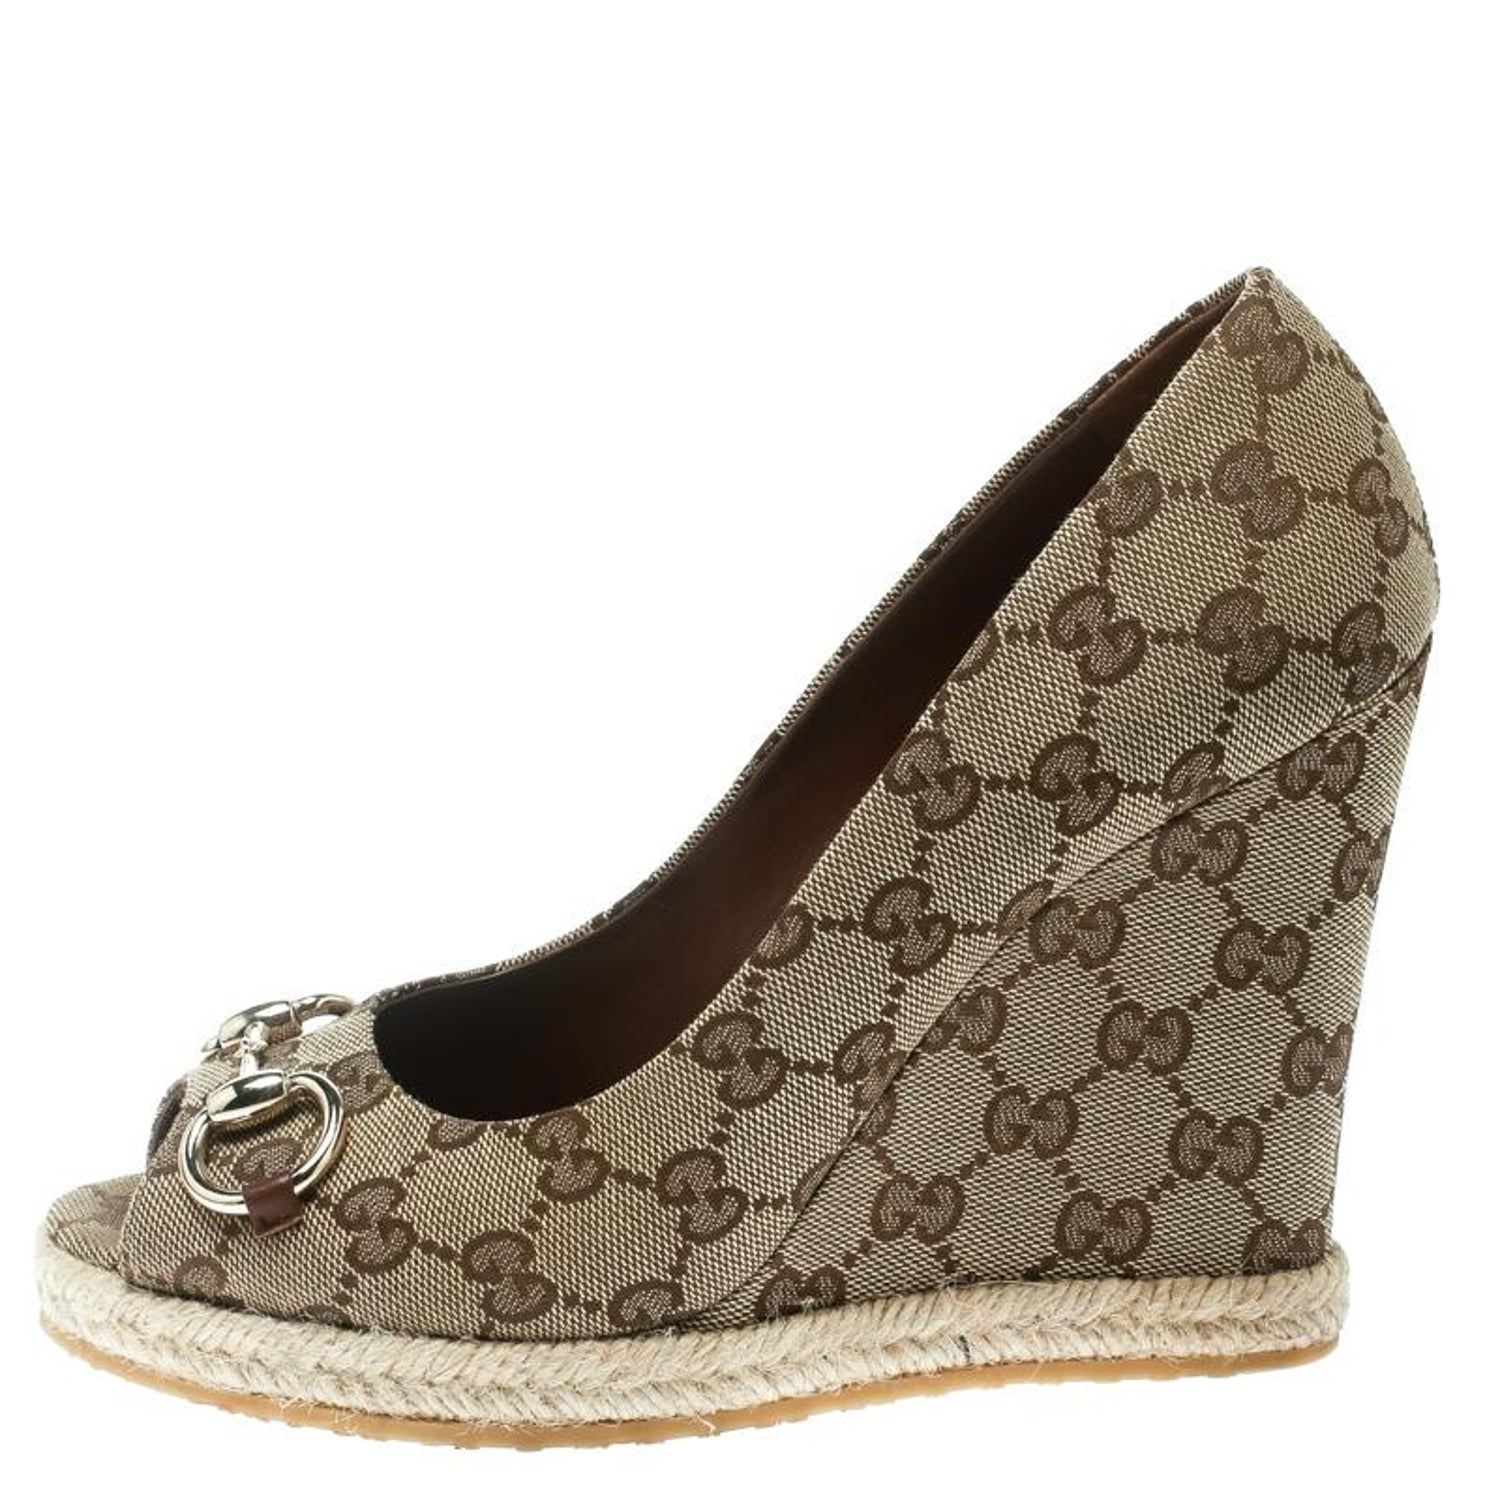 dad83eaf8 Gucci Beige GG Canvas Charlotte Horsebit Peep Toe Wedge Pumps Size 39 For  Sale at 1stdibs